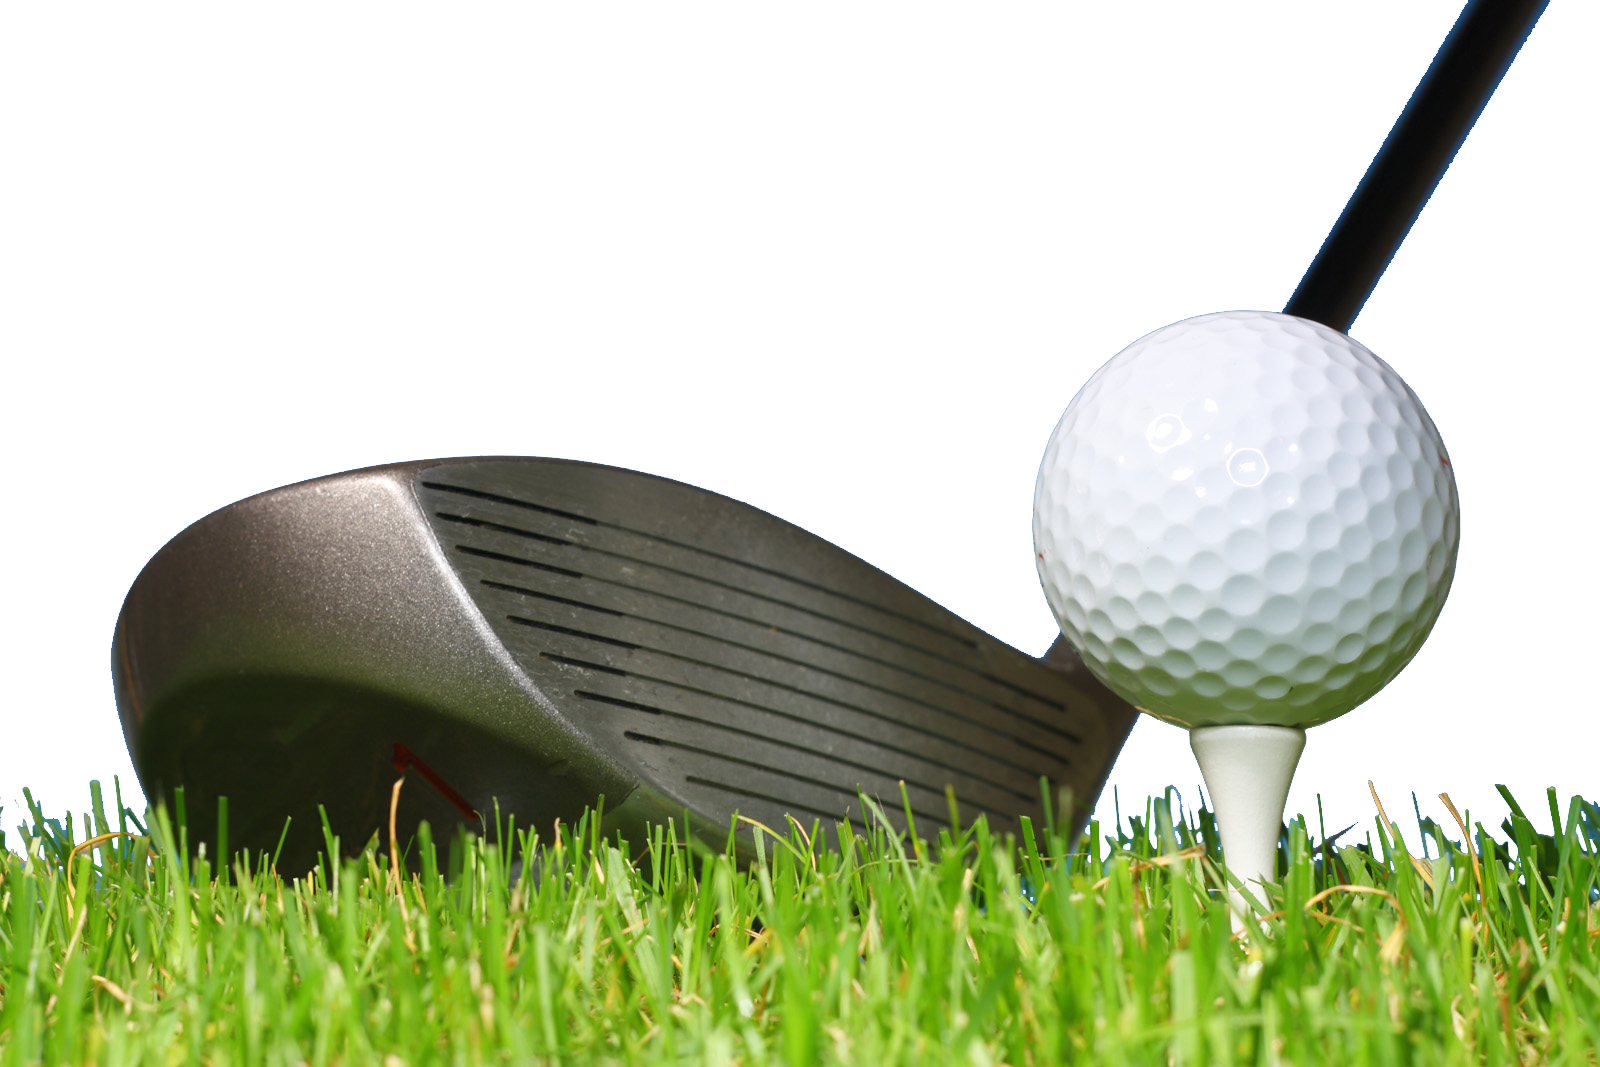 Golf ball on tee with club clipart free Golf ball Golf club Tee Wood - Golf balls and golf clubs png ... free